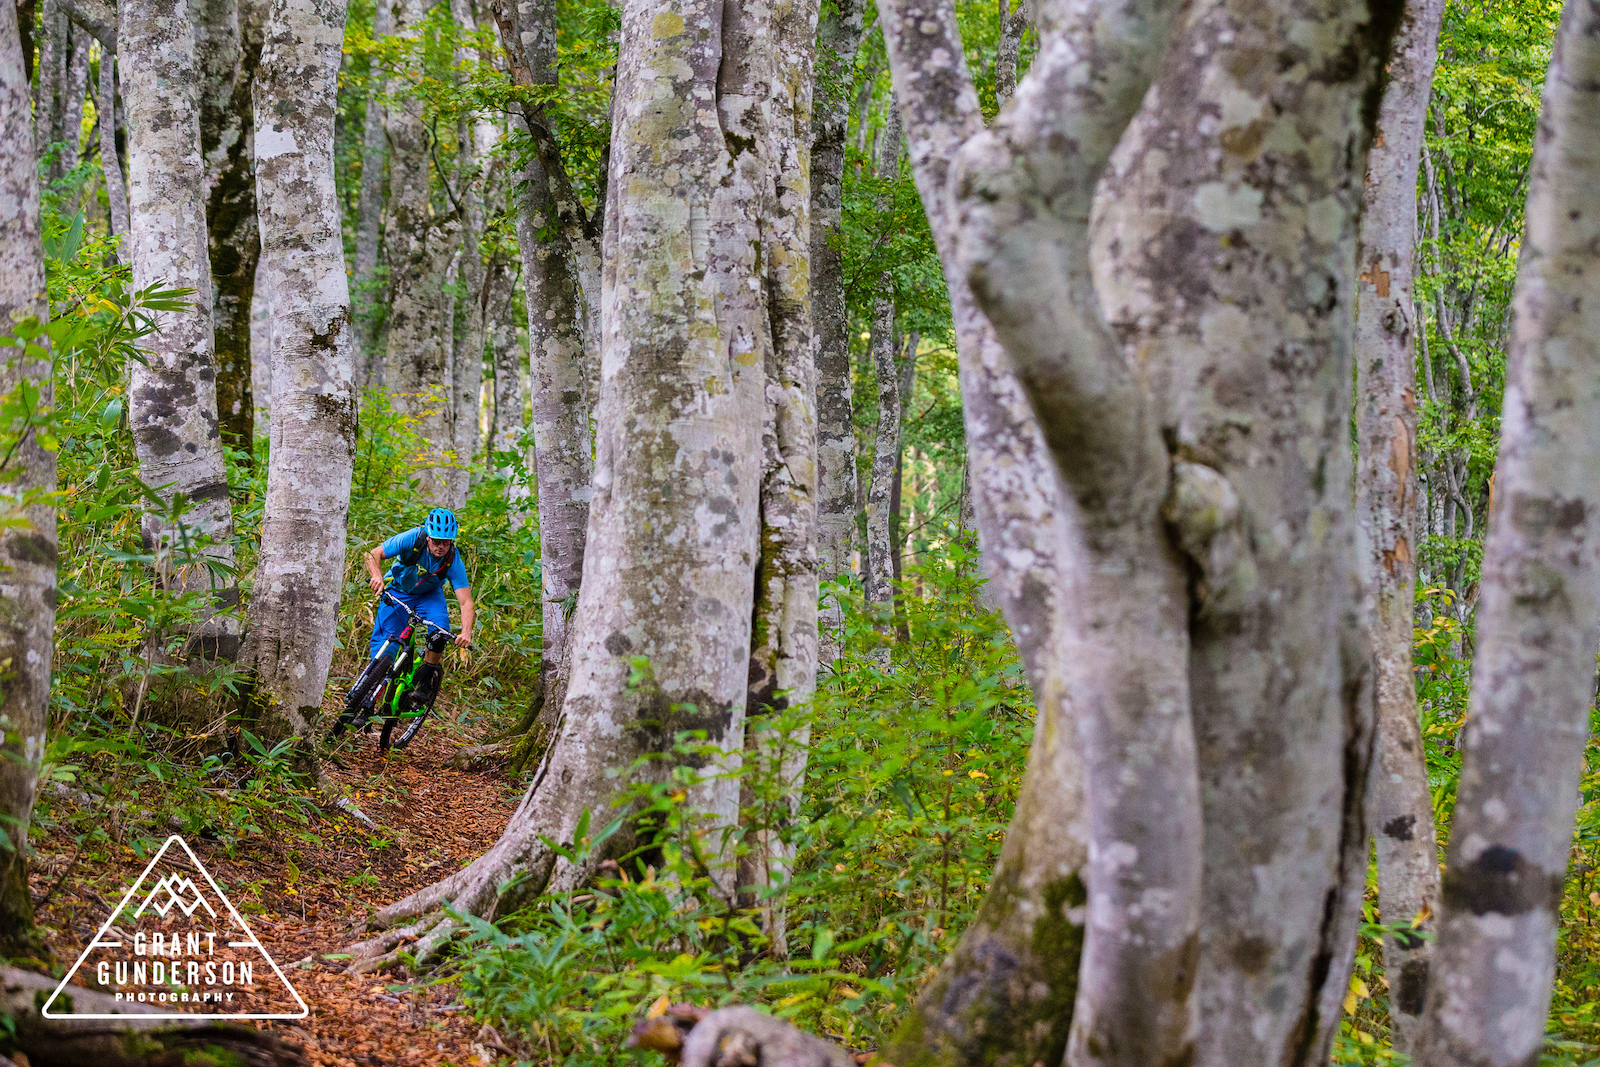 KC Deane mountain biking in Nozawa Onsen